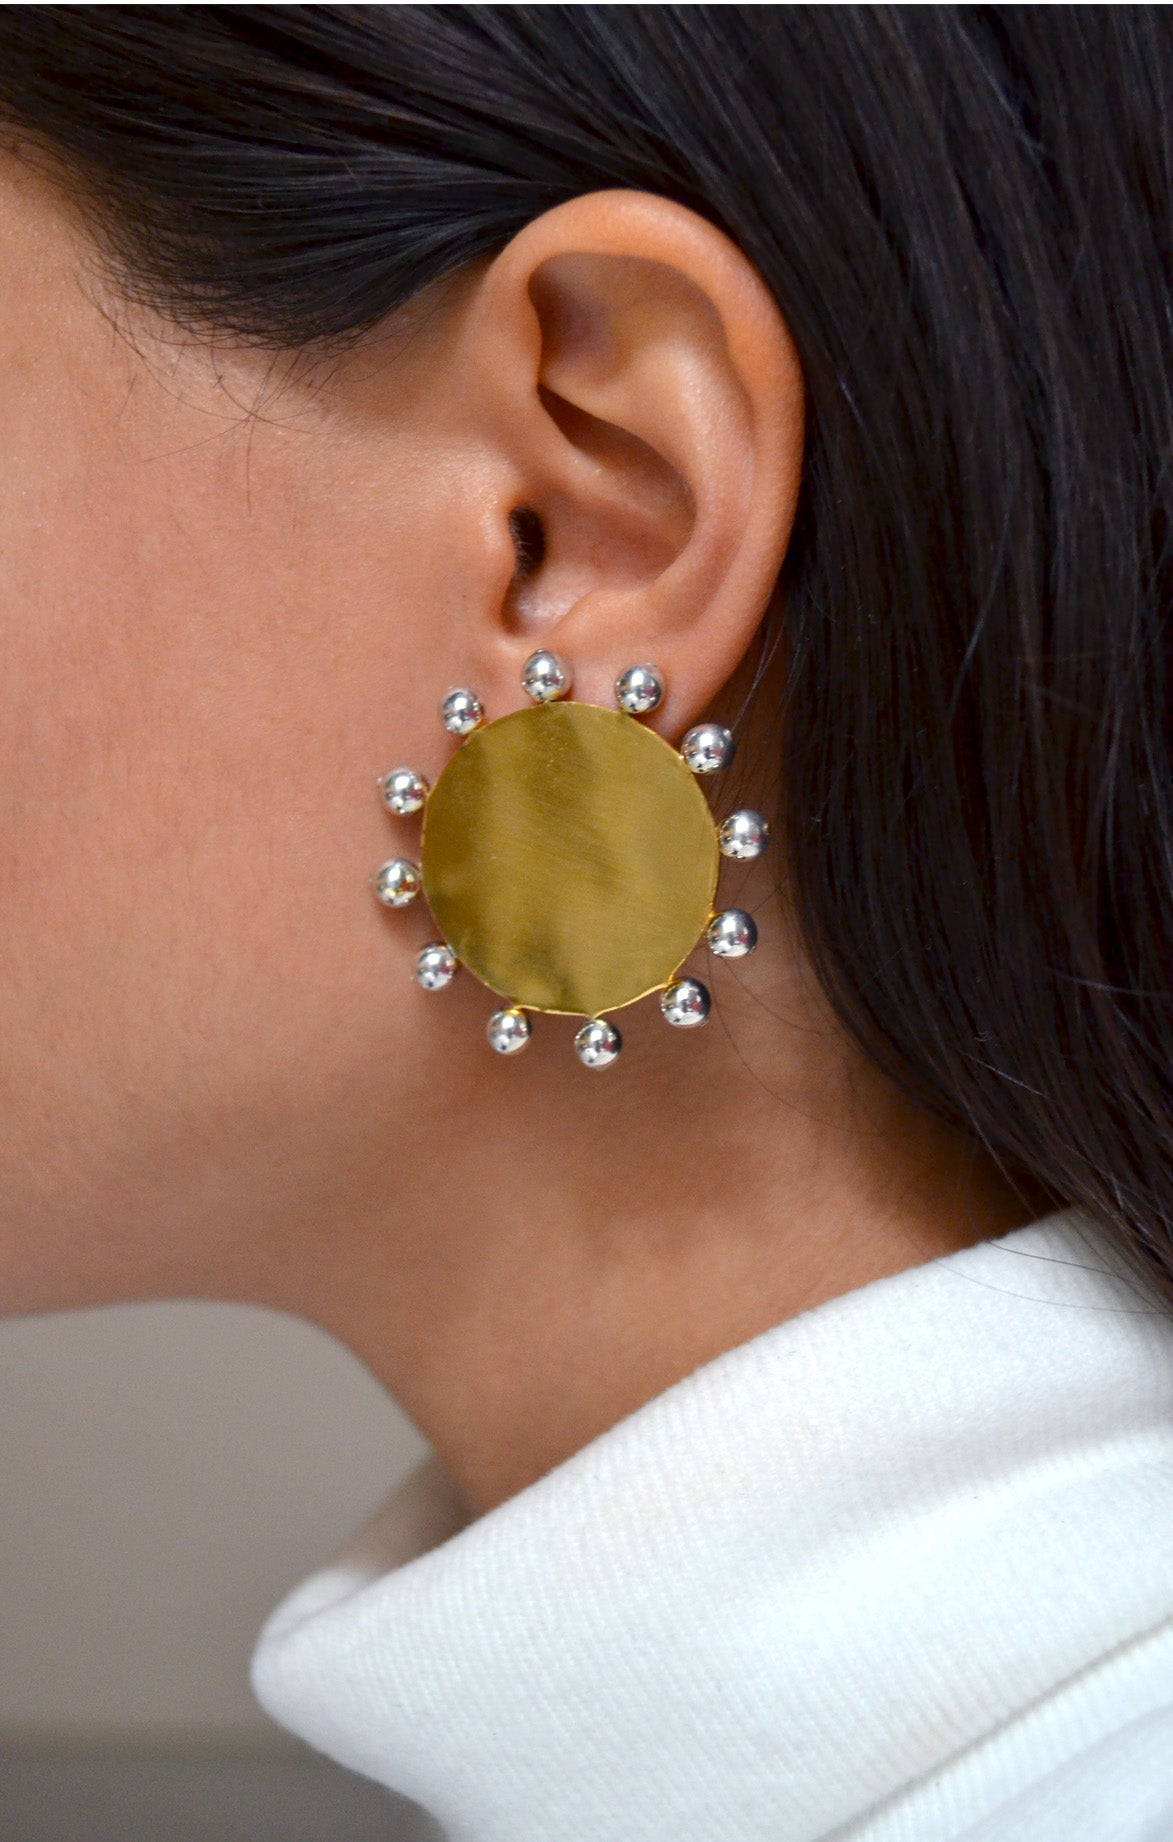 Le Soleil Earrings